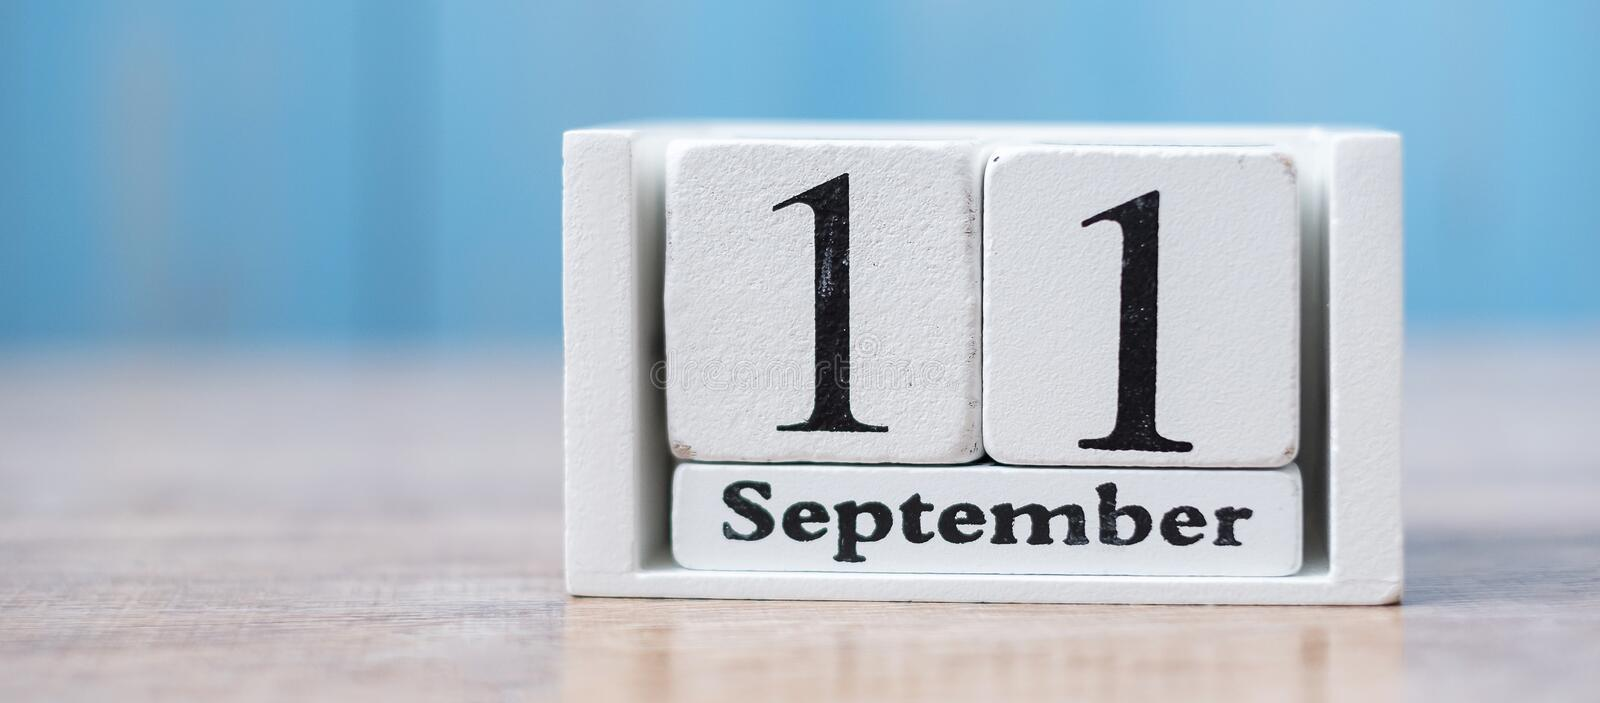 11 September calendar 9/11 on wood background. copy space for text. Patriot Day and Memorial concept.  stock photography